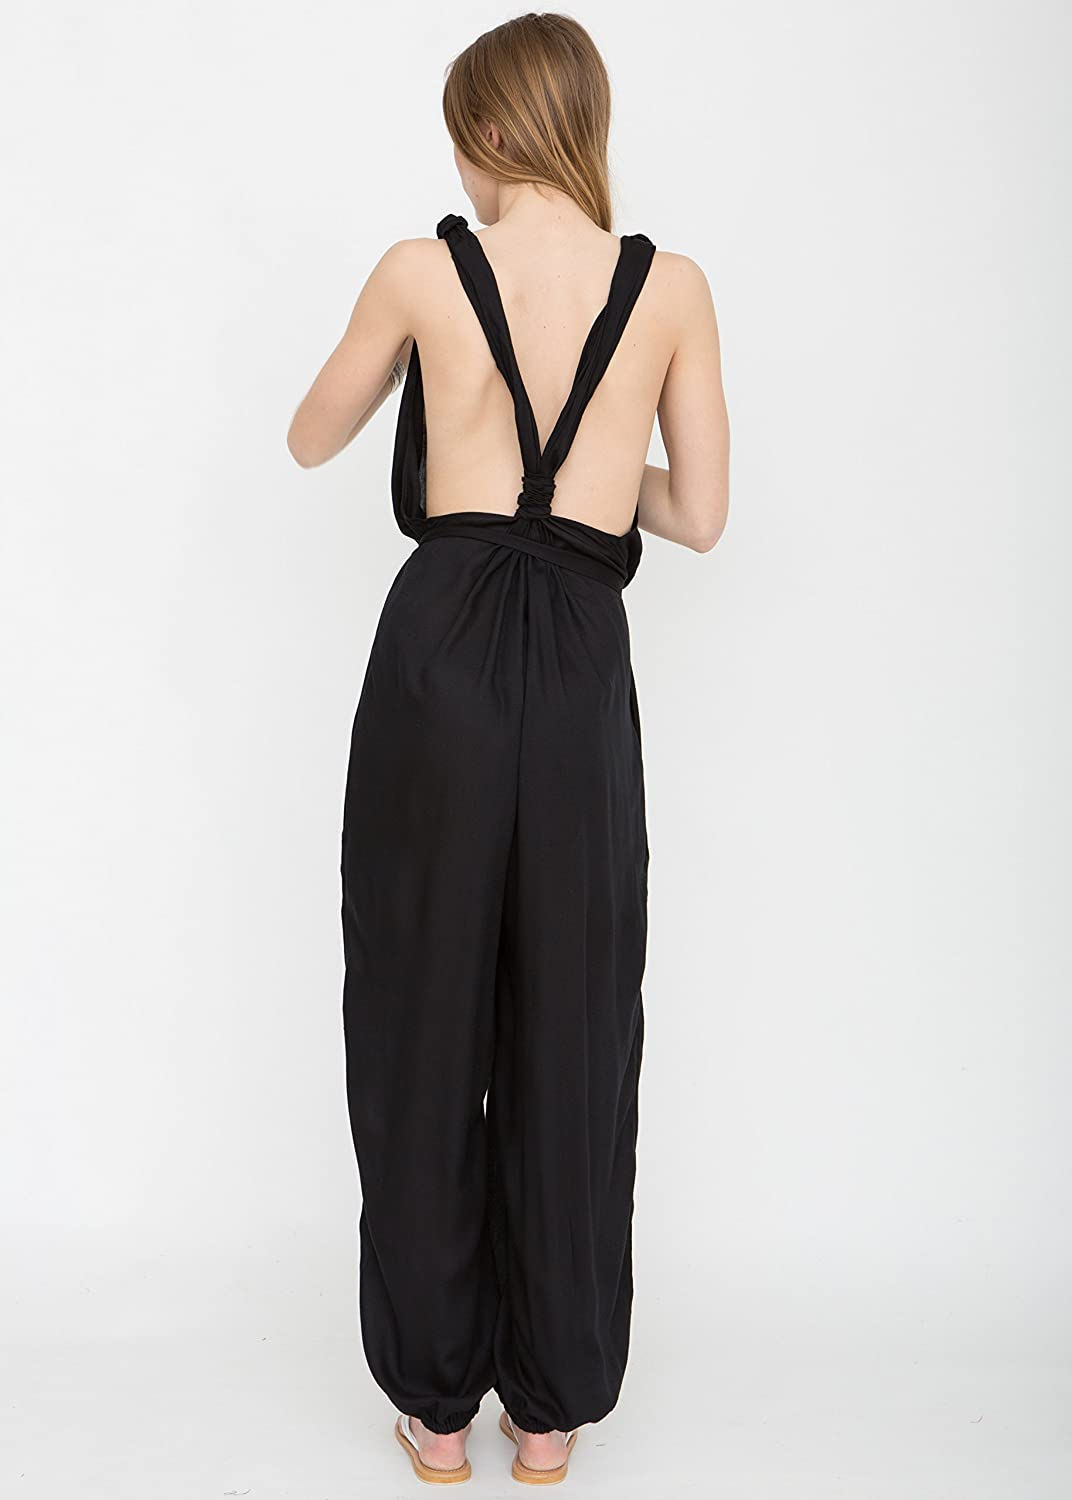 T-Back Romper Jumpsuit Black